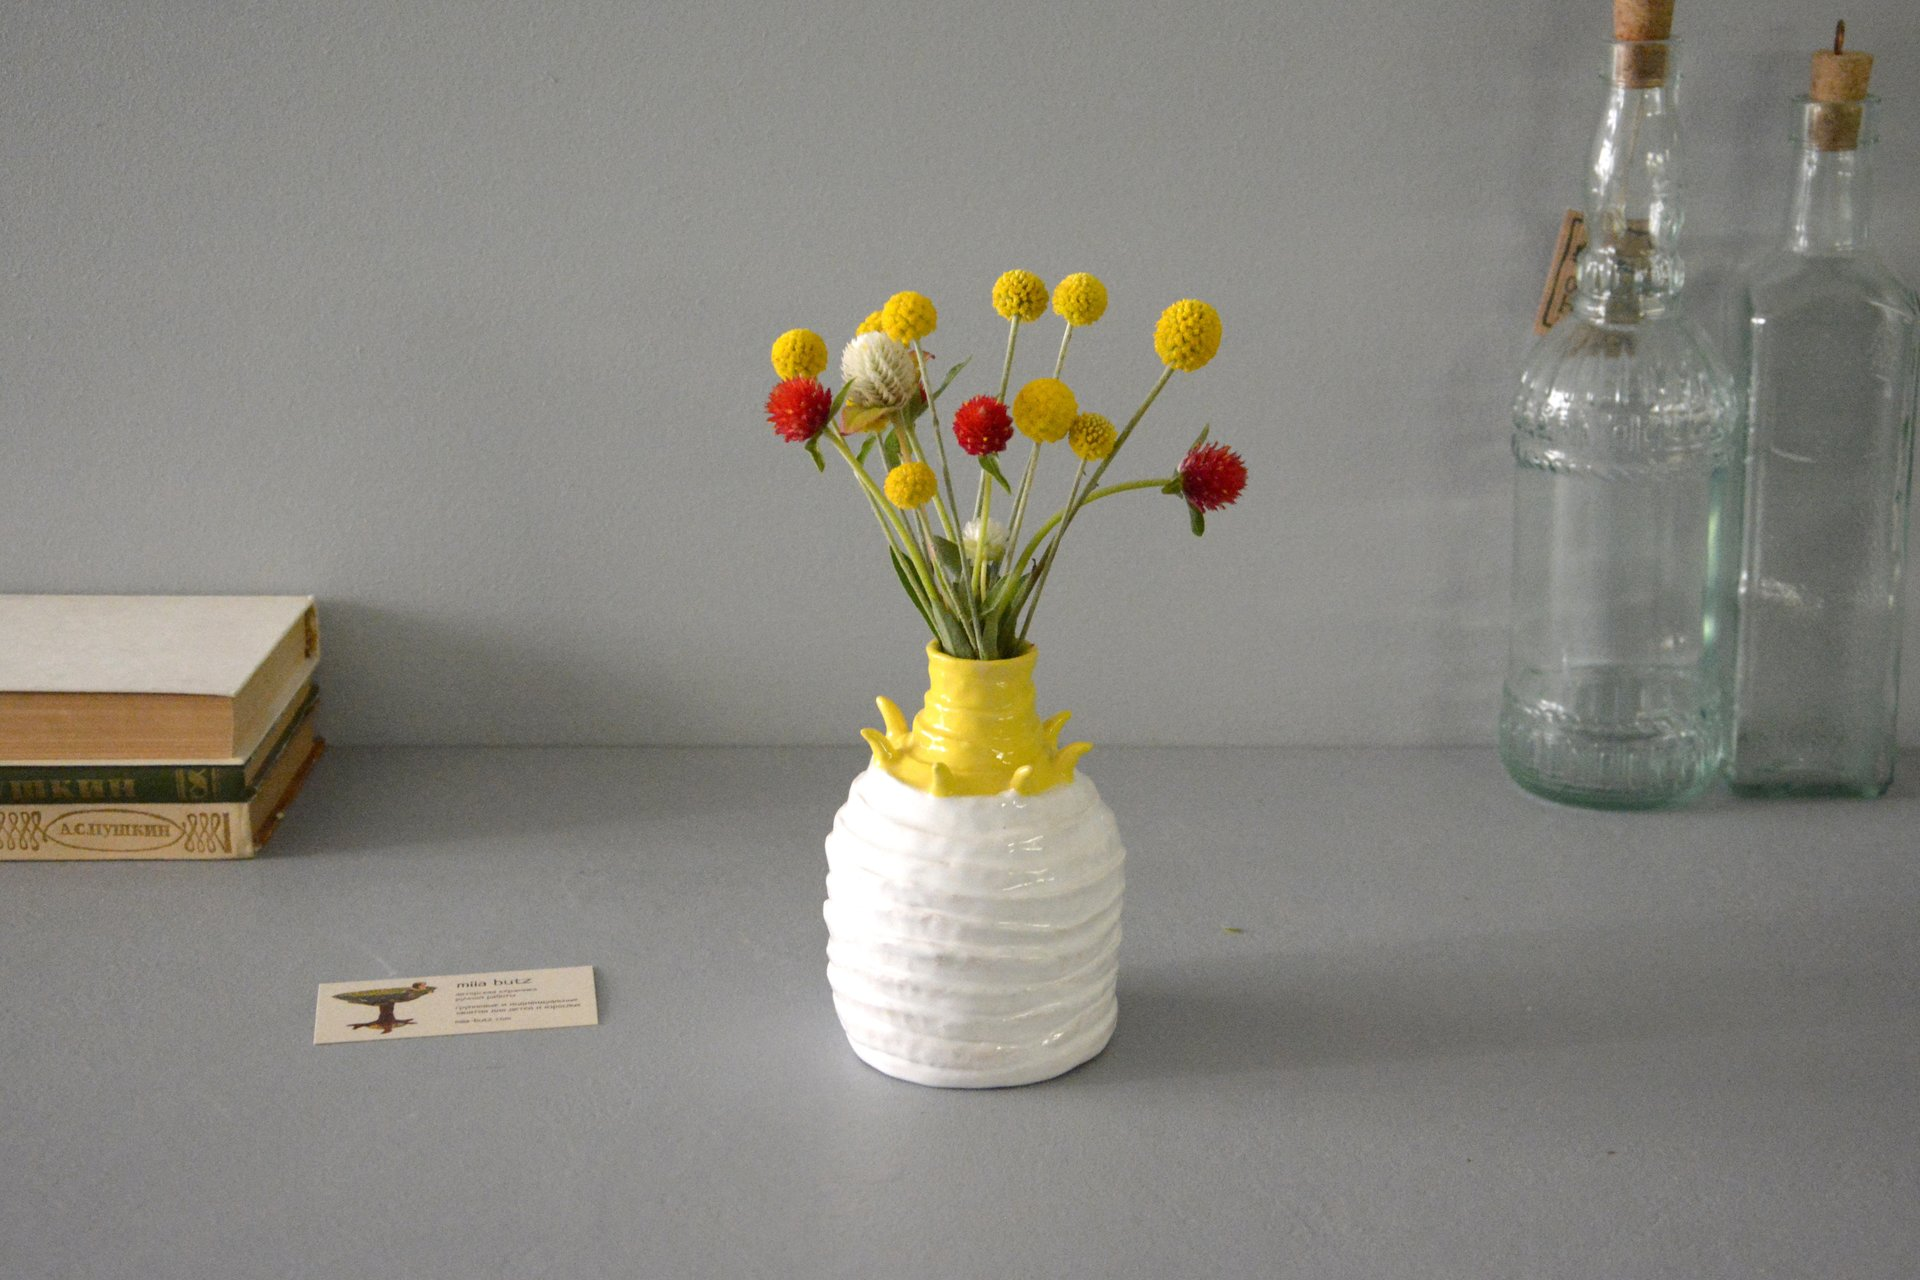 Decorative white-yellow vase Tourniquets, height - 13,5 cm, photo 3 of 7. 1162.